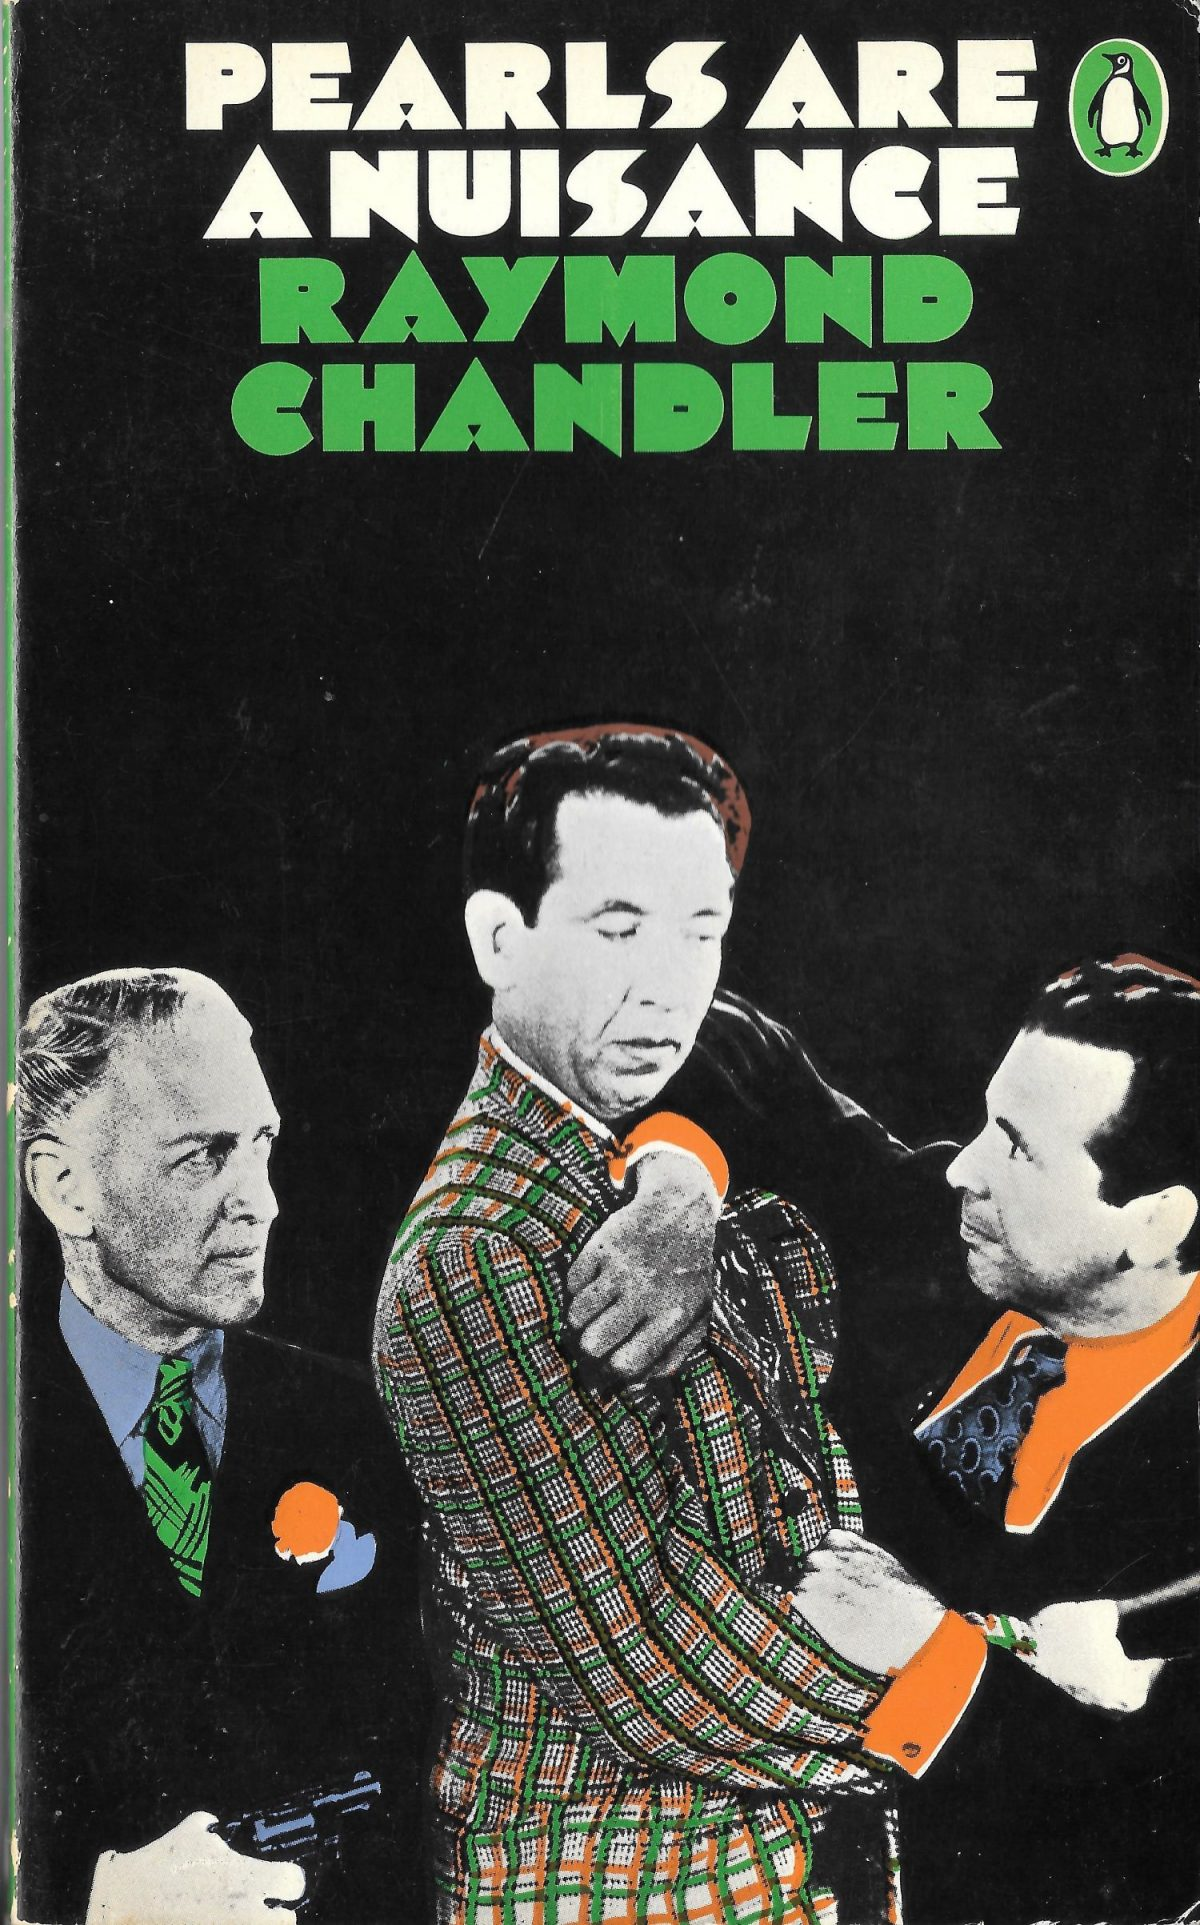 Raymond Chandler, Pearls are a Nuisance, books, crime fiction